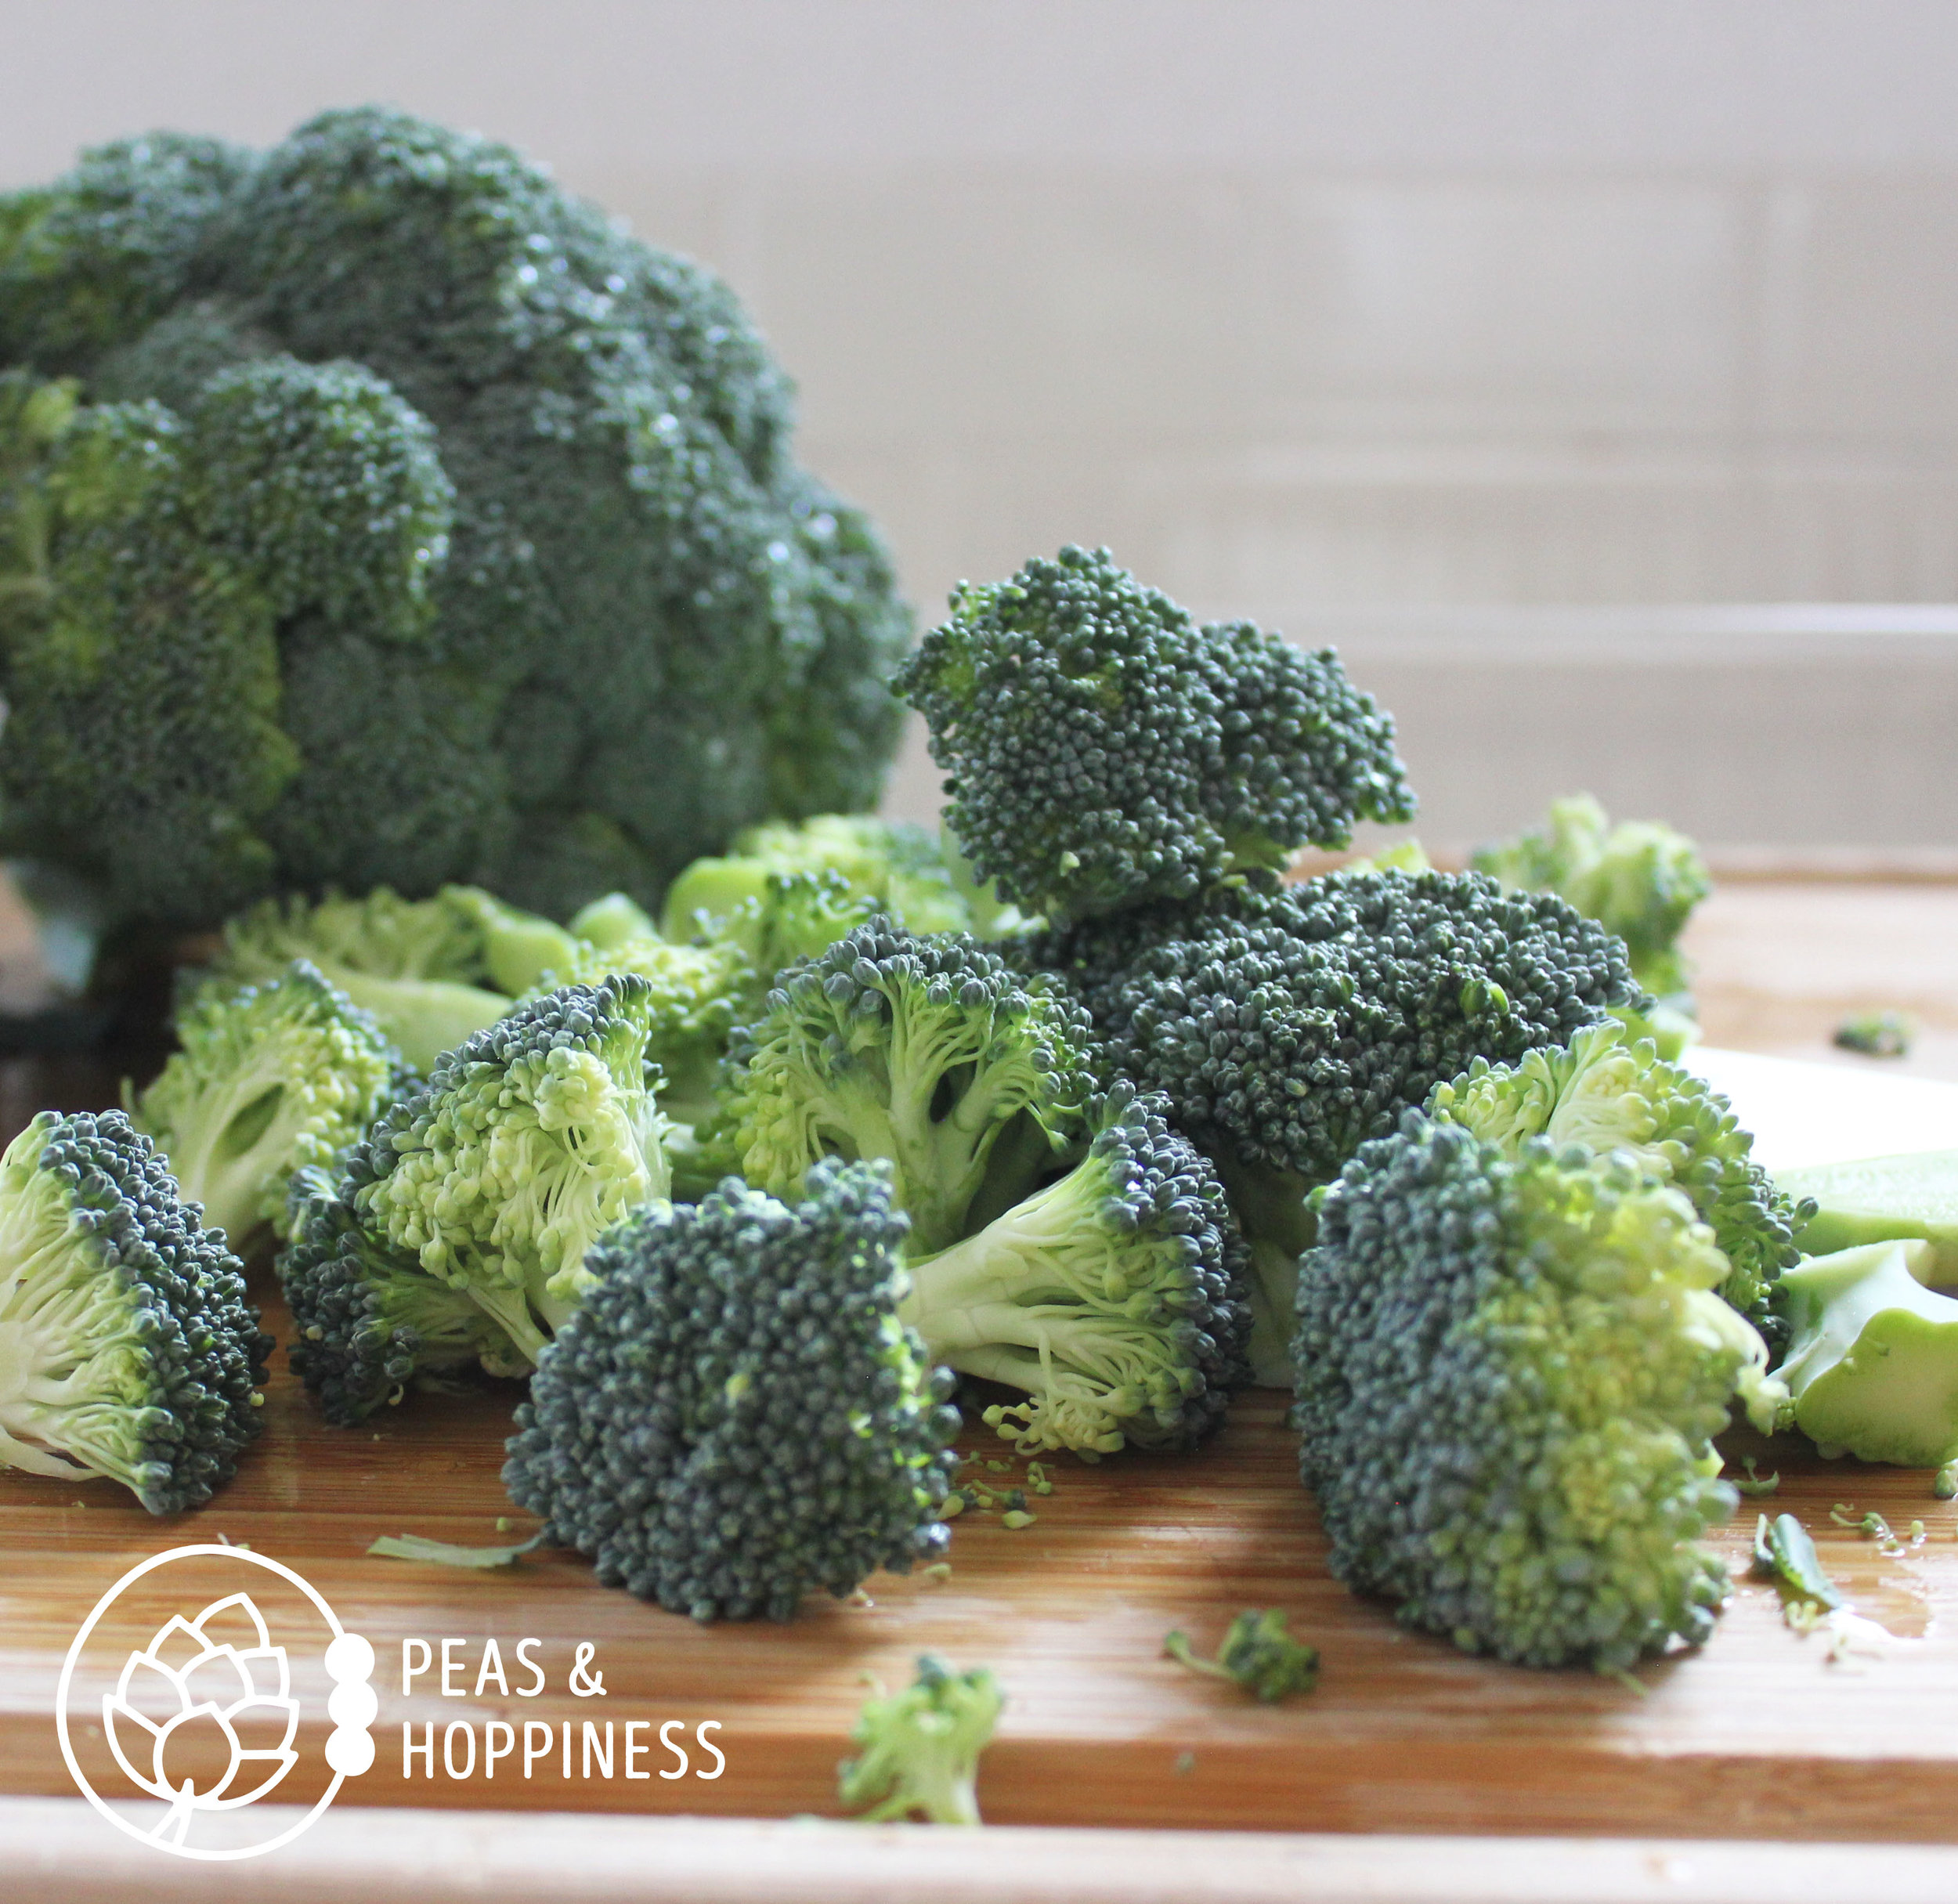 Broccoli is basic, high in antioxidants, AND high in calcium - good for all kinds of things! Try this recipe for  Crowd-Pleasing Roasted Broccoli